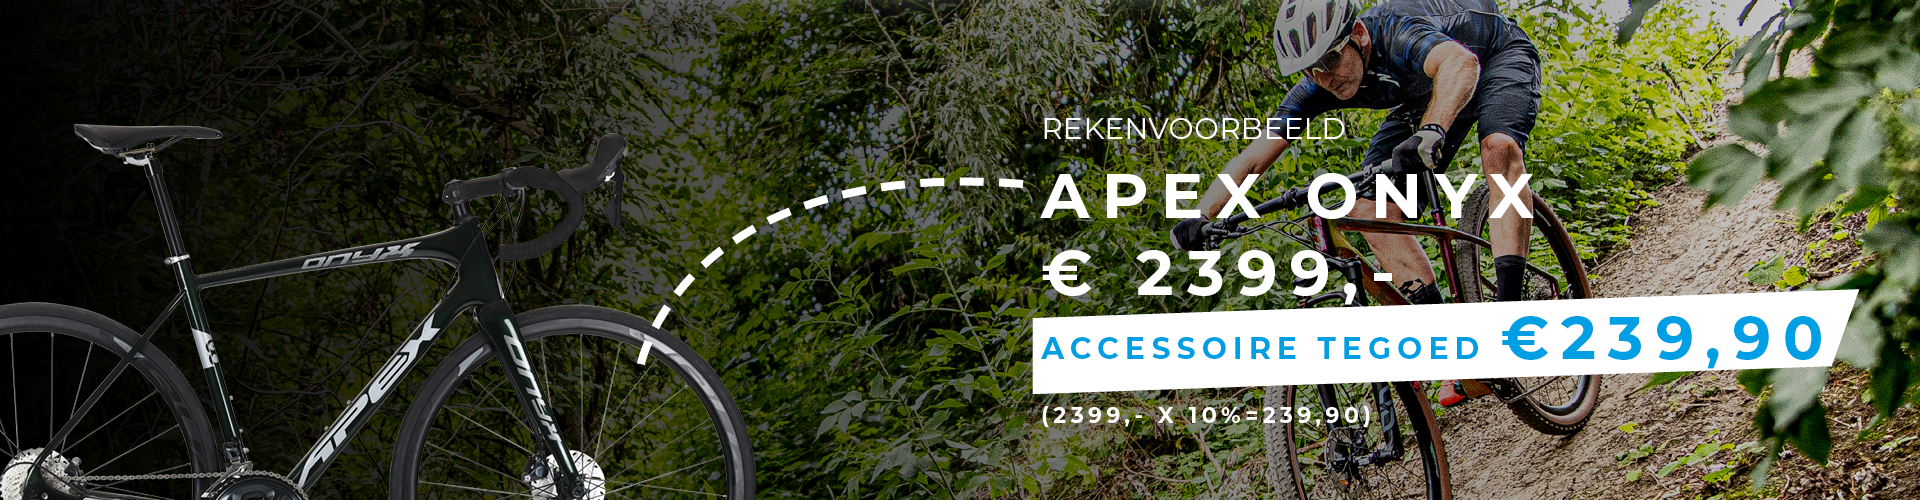 CC5311_BIKEsale_2019-banner2.png